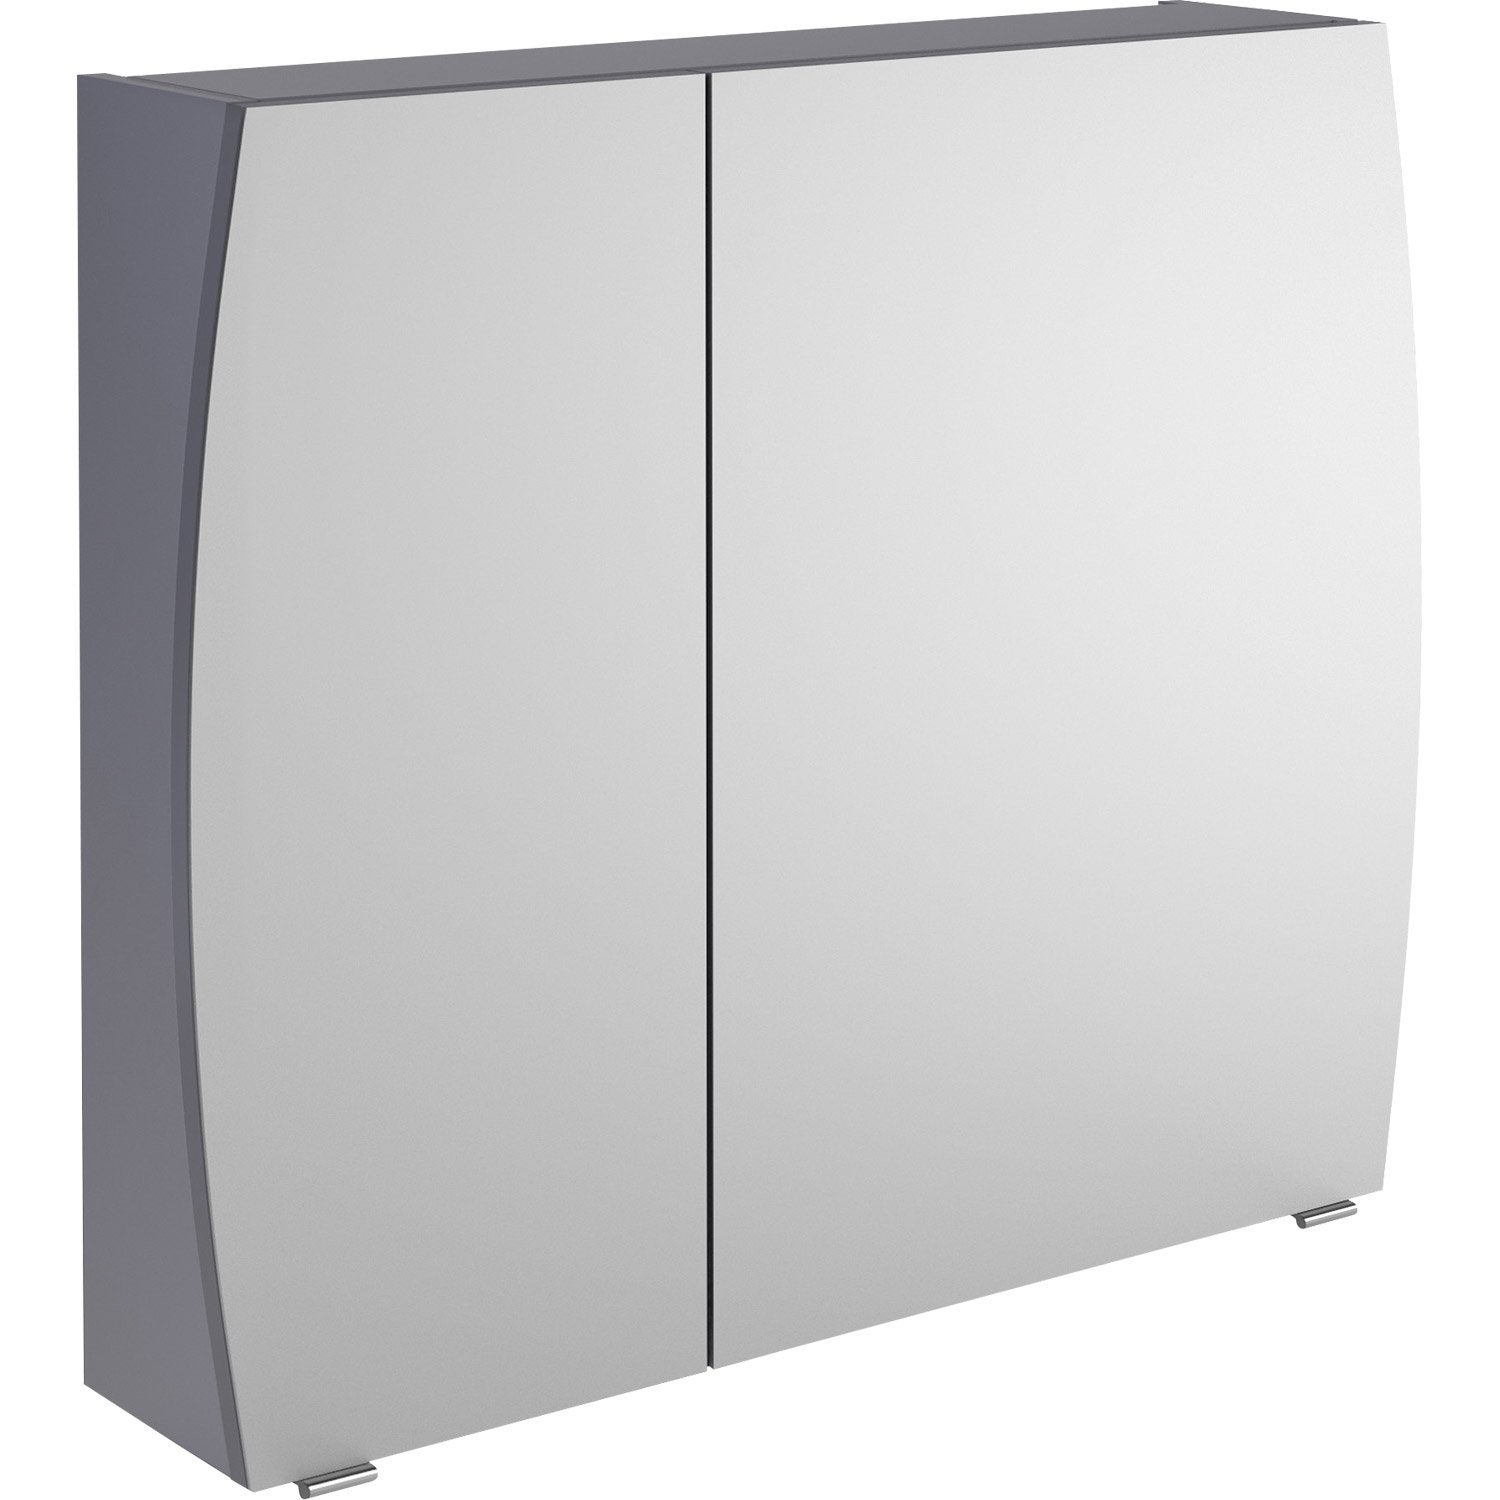 armoire de toilette l 80 cm gris image leroy merlin. Black Bedroom Furniture Sets. Home Design Ideas